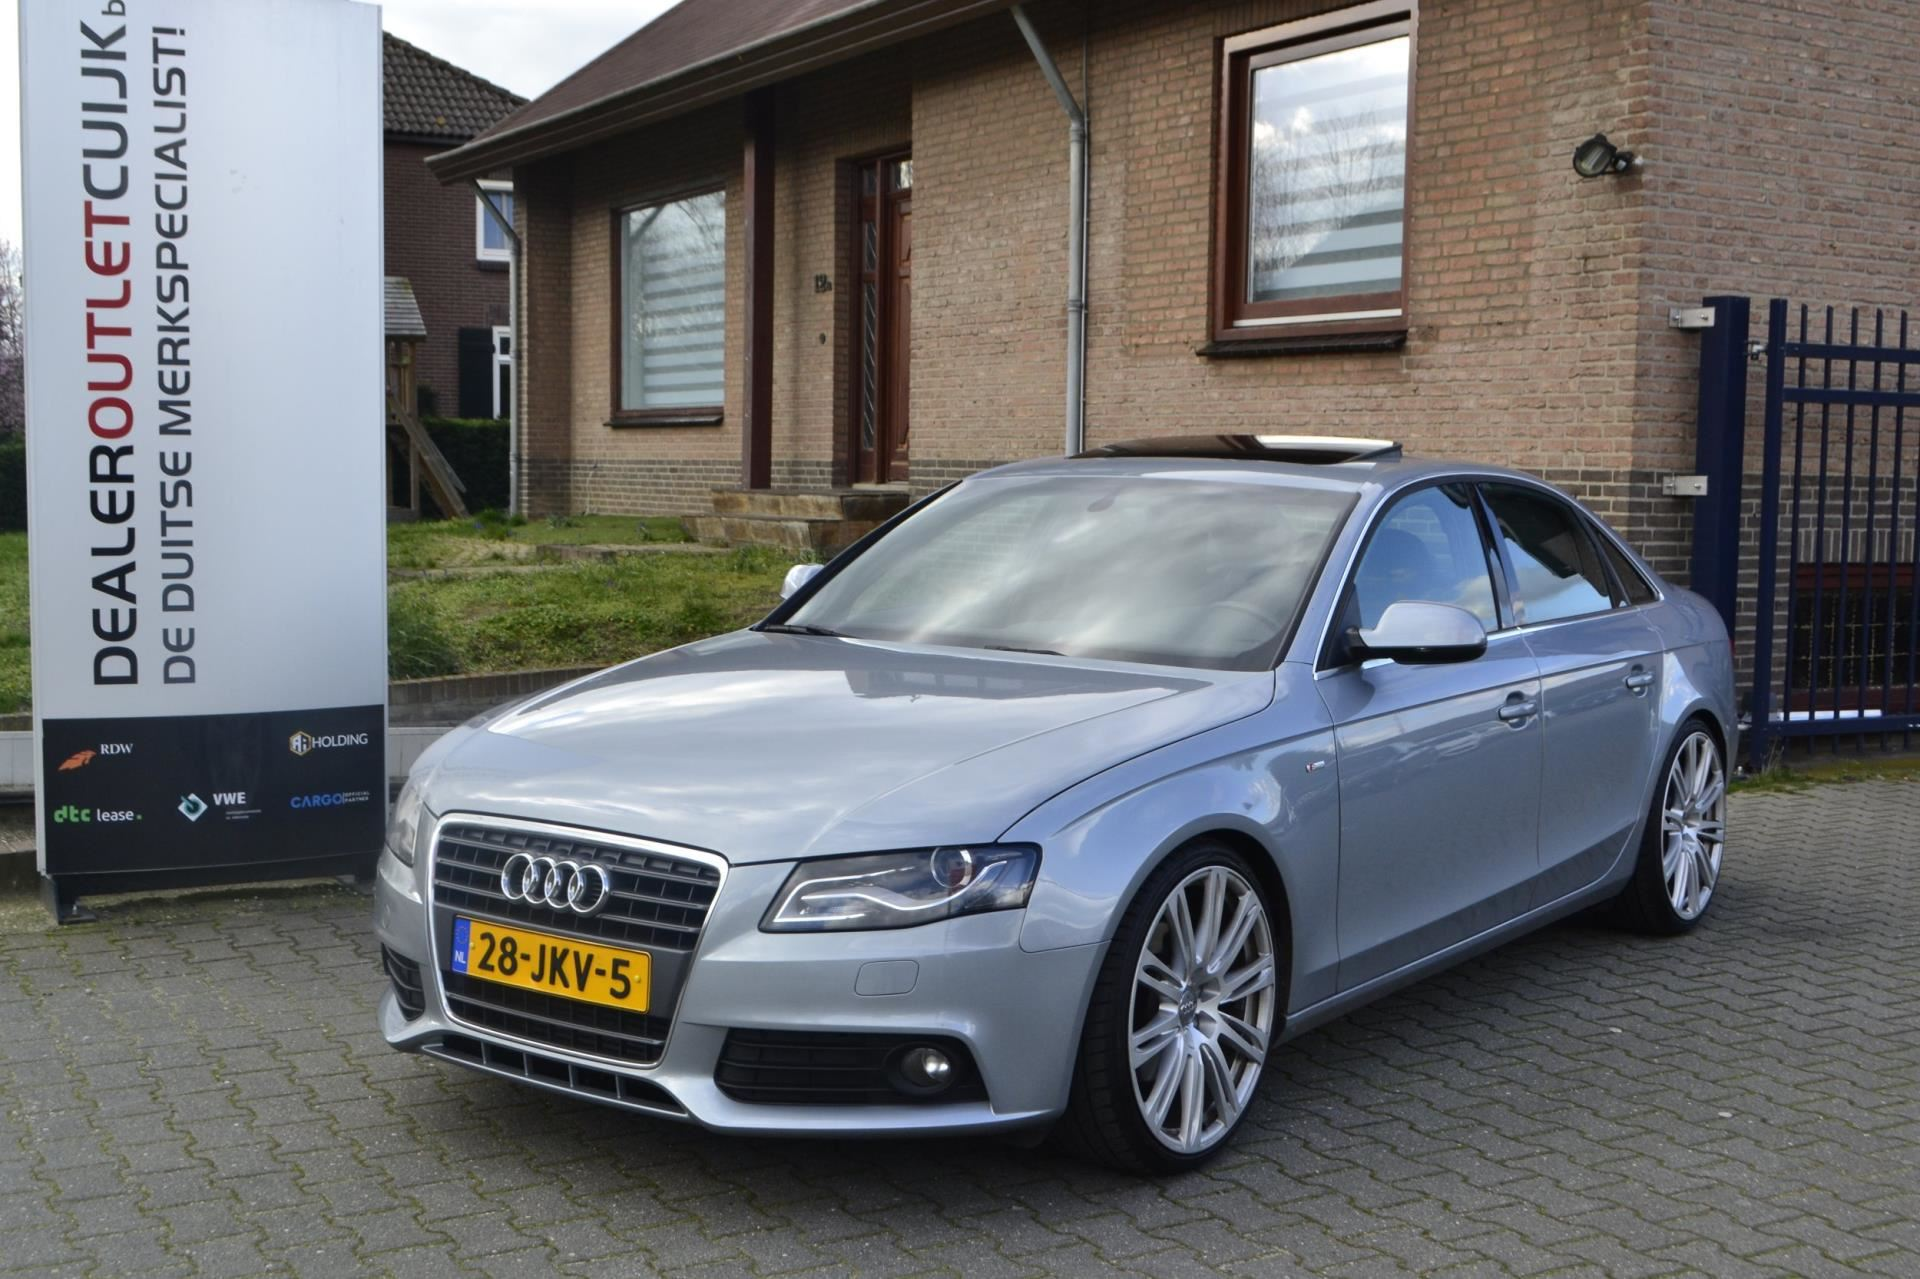 Audi A4 occasion - Dealer Outlet Cuijk b.v.